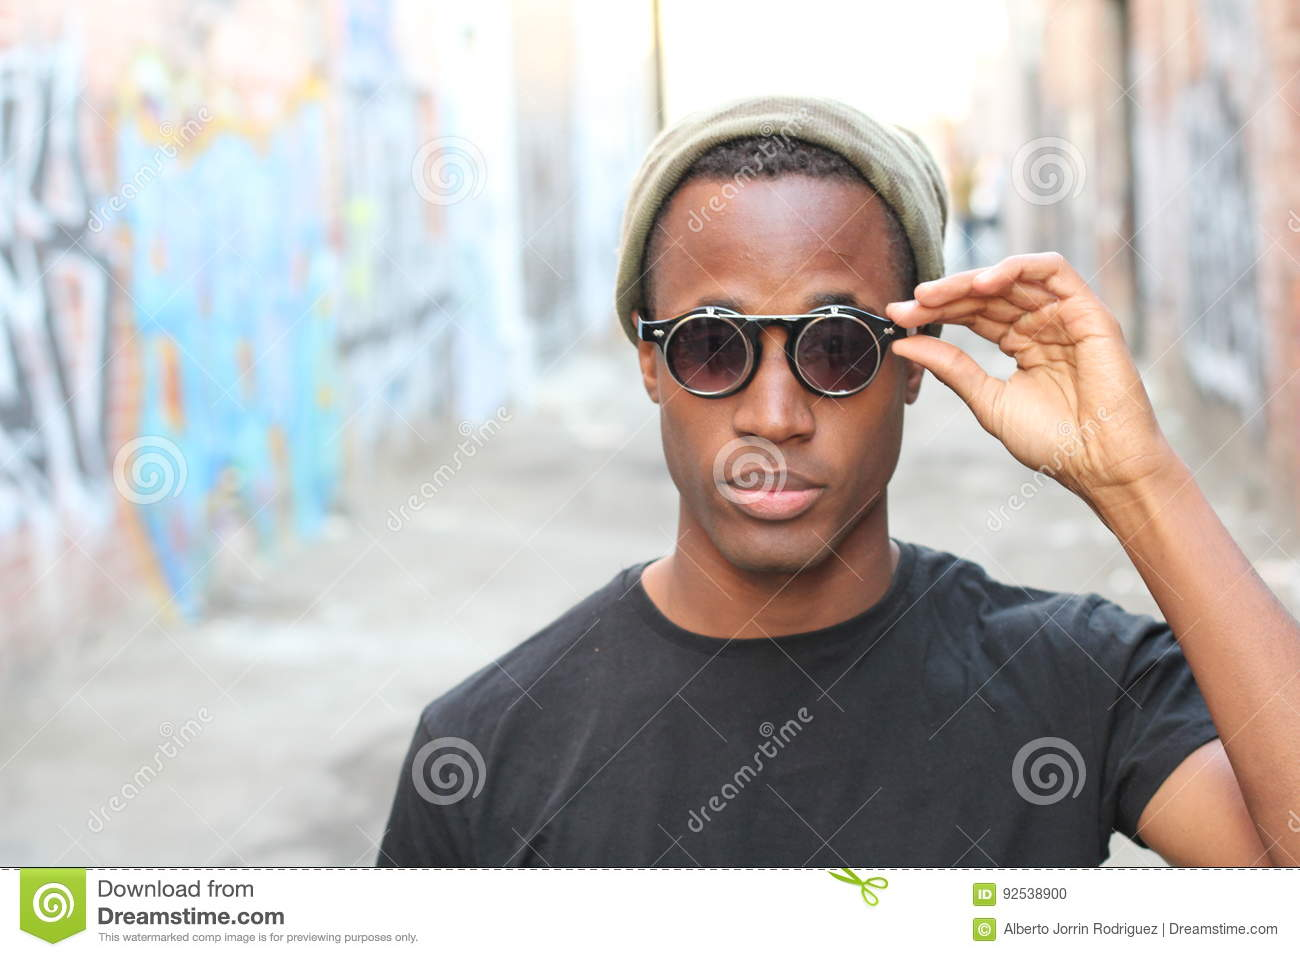 c402a62bc6d Fashionable African Man Wearing A Sunglasses